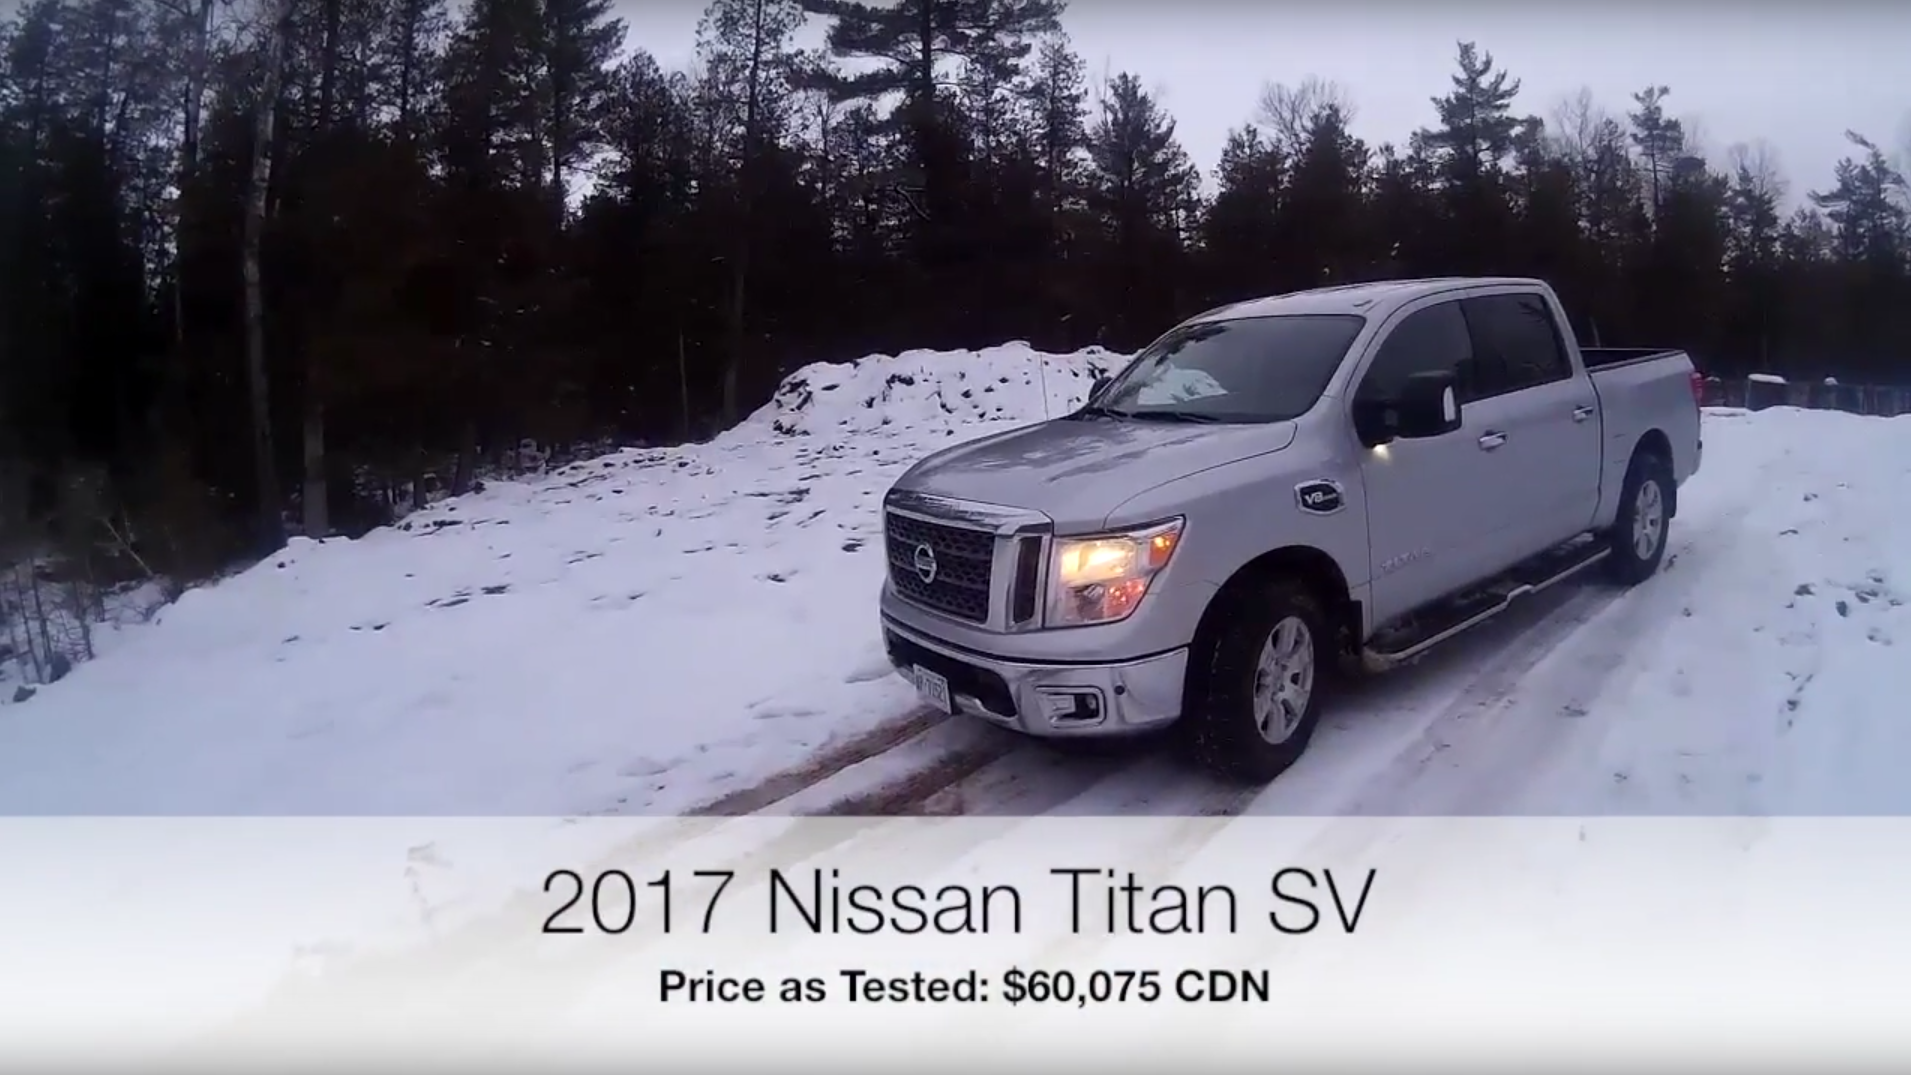 2017 Nissan Titan SV - A second look